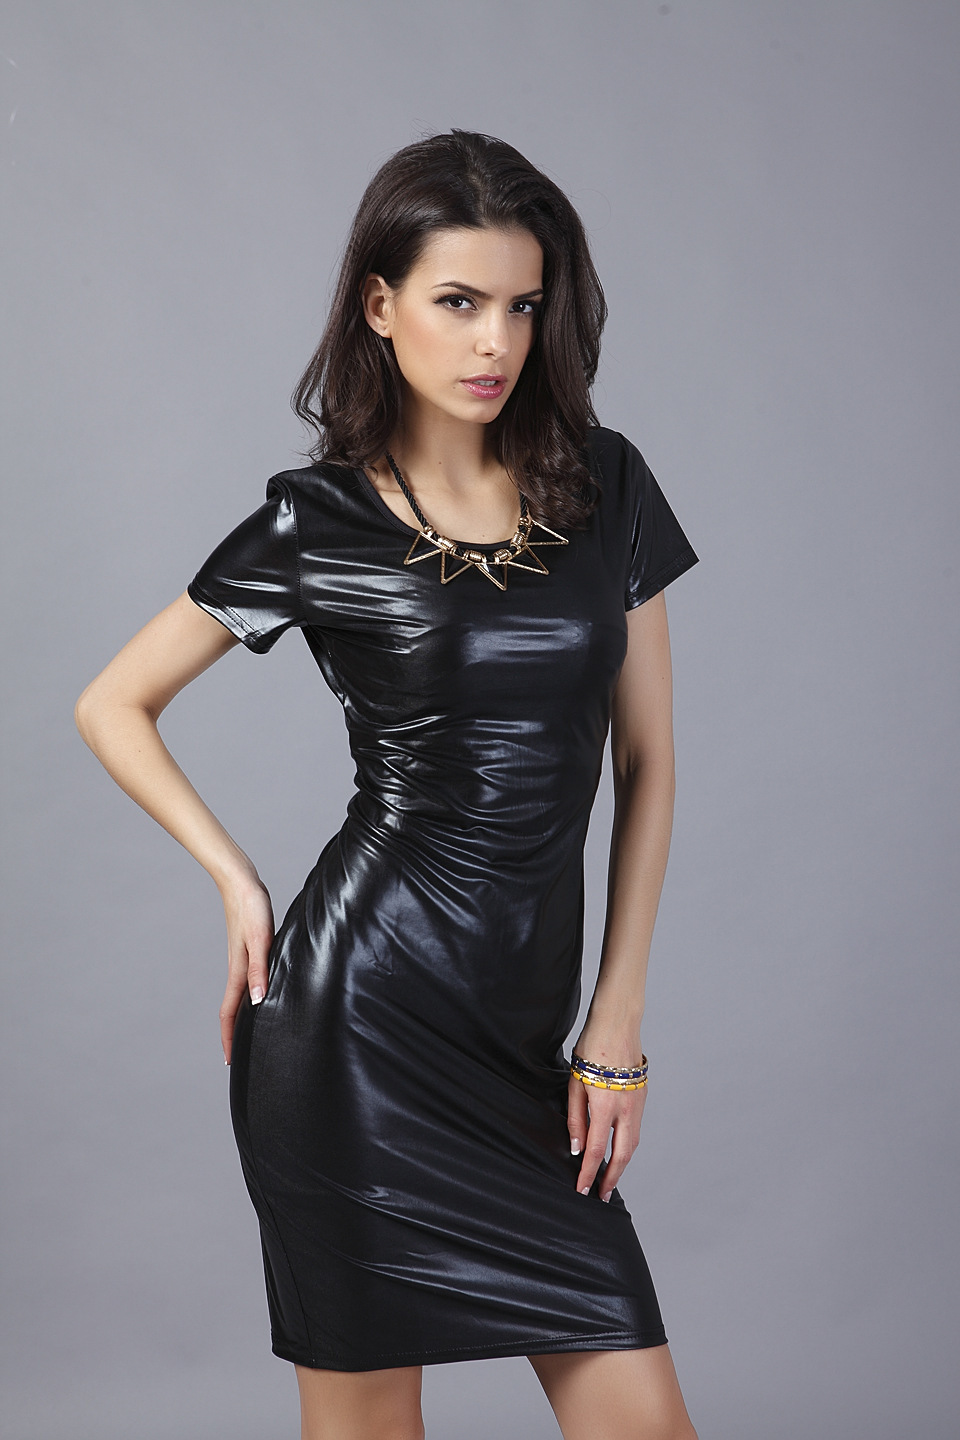 Girl In Leather Dress